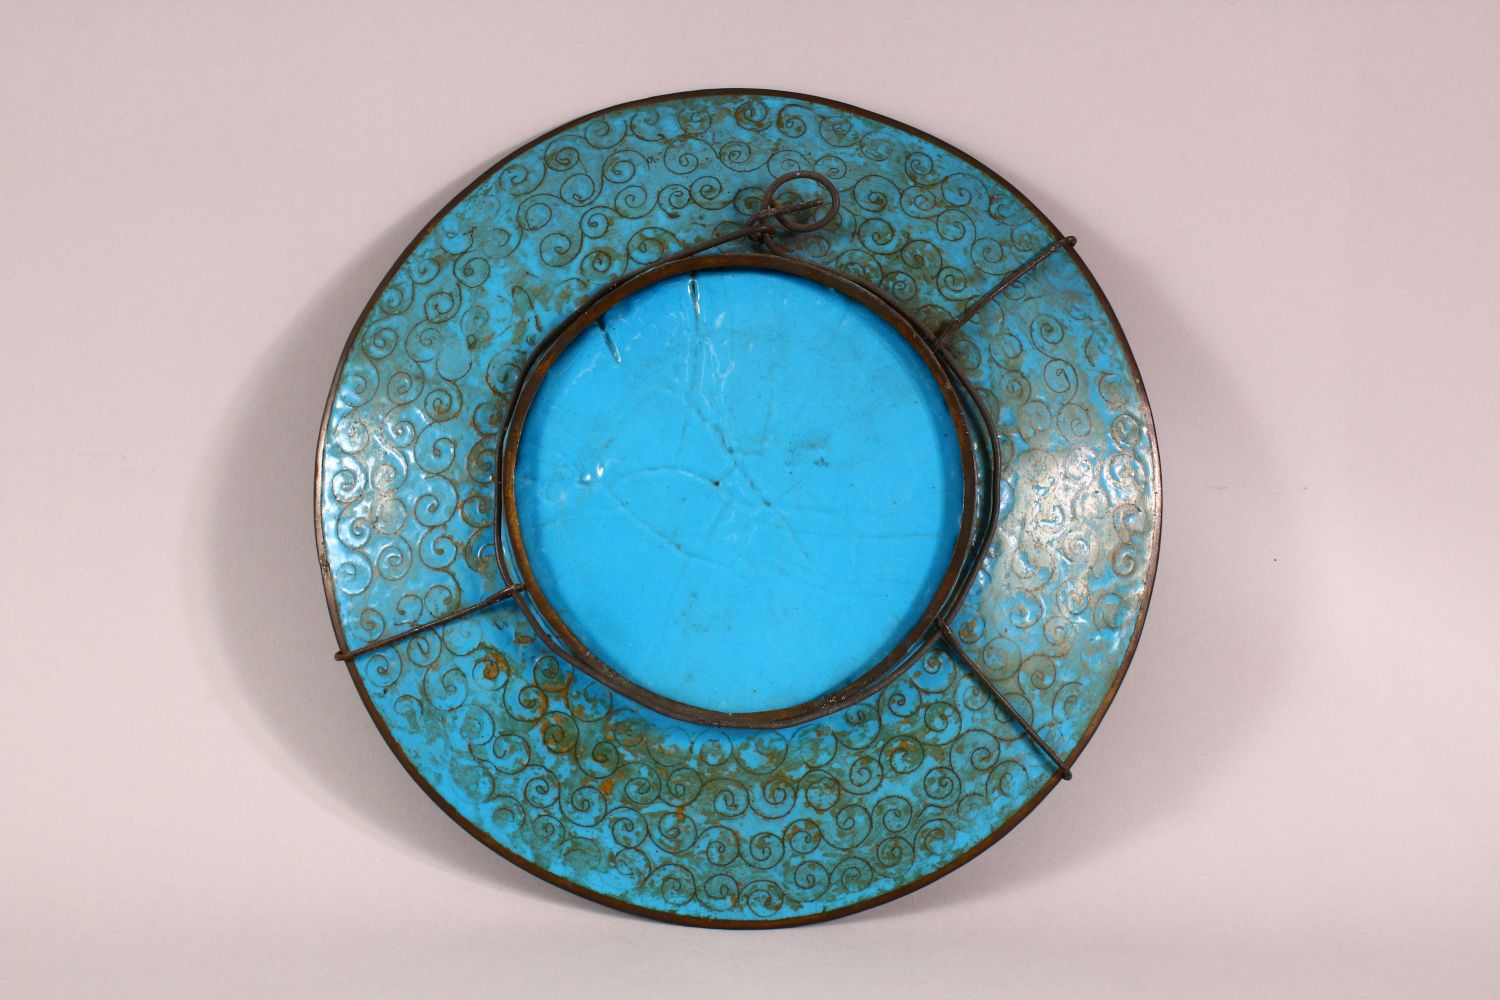 A JAPANESE CLOISONNE DISH, decorated with cranes and flowers, 30cm diameter. - Image 3 of 3